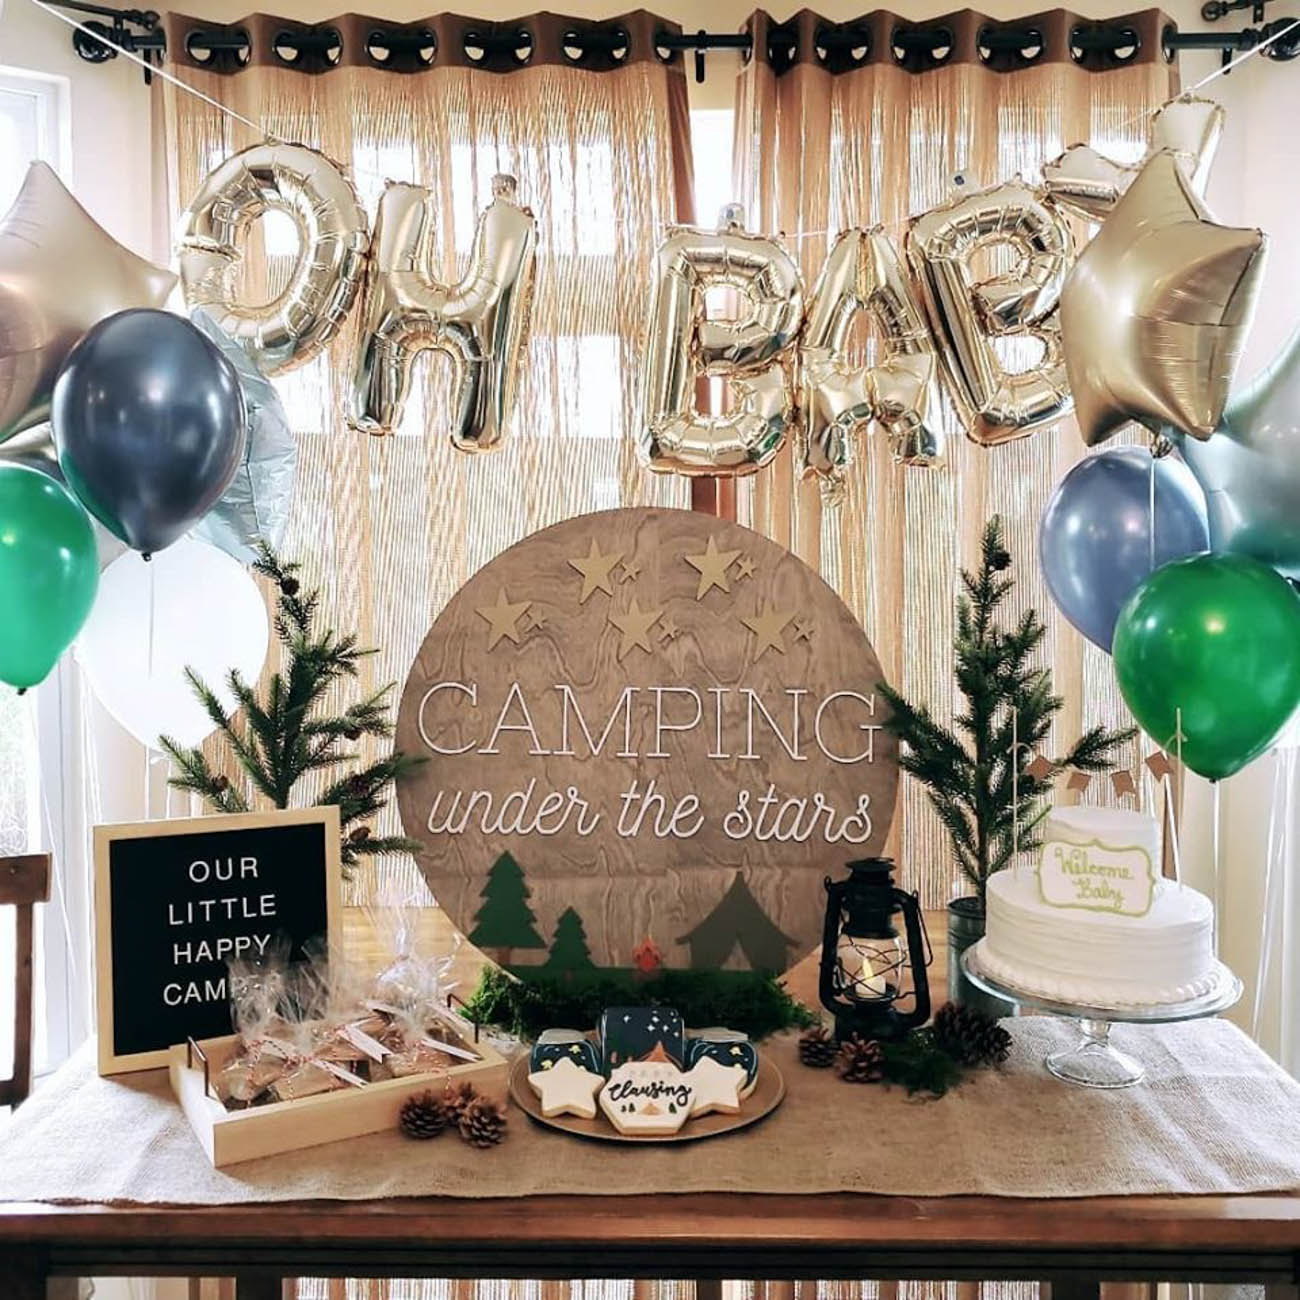 The custom signs are perfect for nurseries, events, parties, and business logos for anyone who wants to add a slightly rustic and personal touch to a room. Clients can pick from all sorts of products in a variety of colors, sizes, fonts, and styles for a completely tailor-made piece. / Image courtesy of Taproot & Co. // Published: 2.5.20